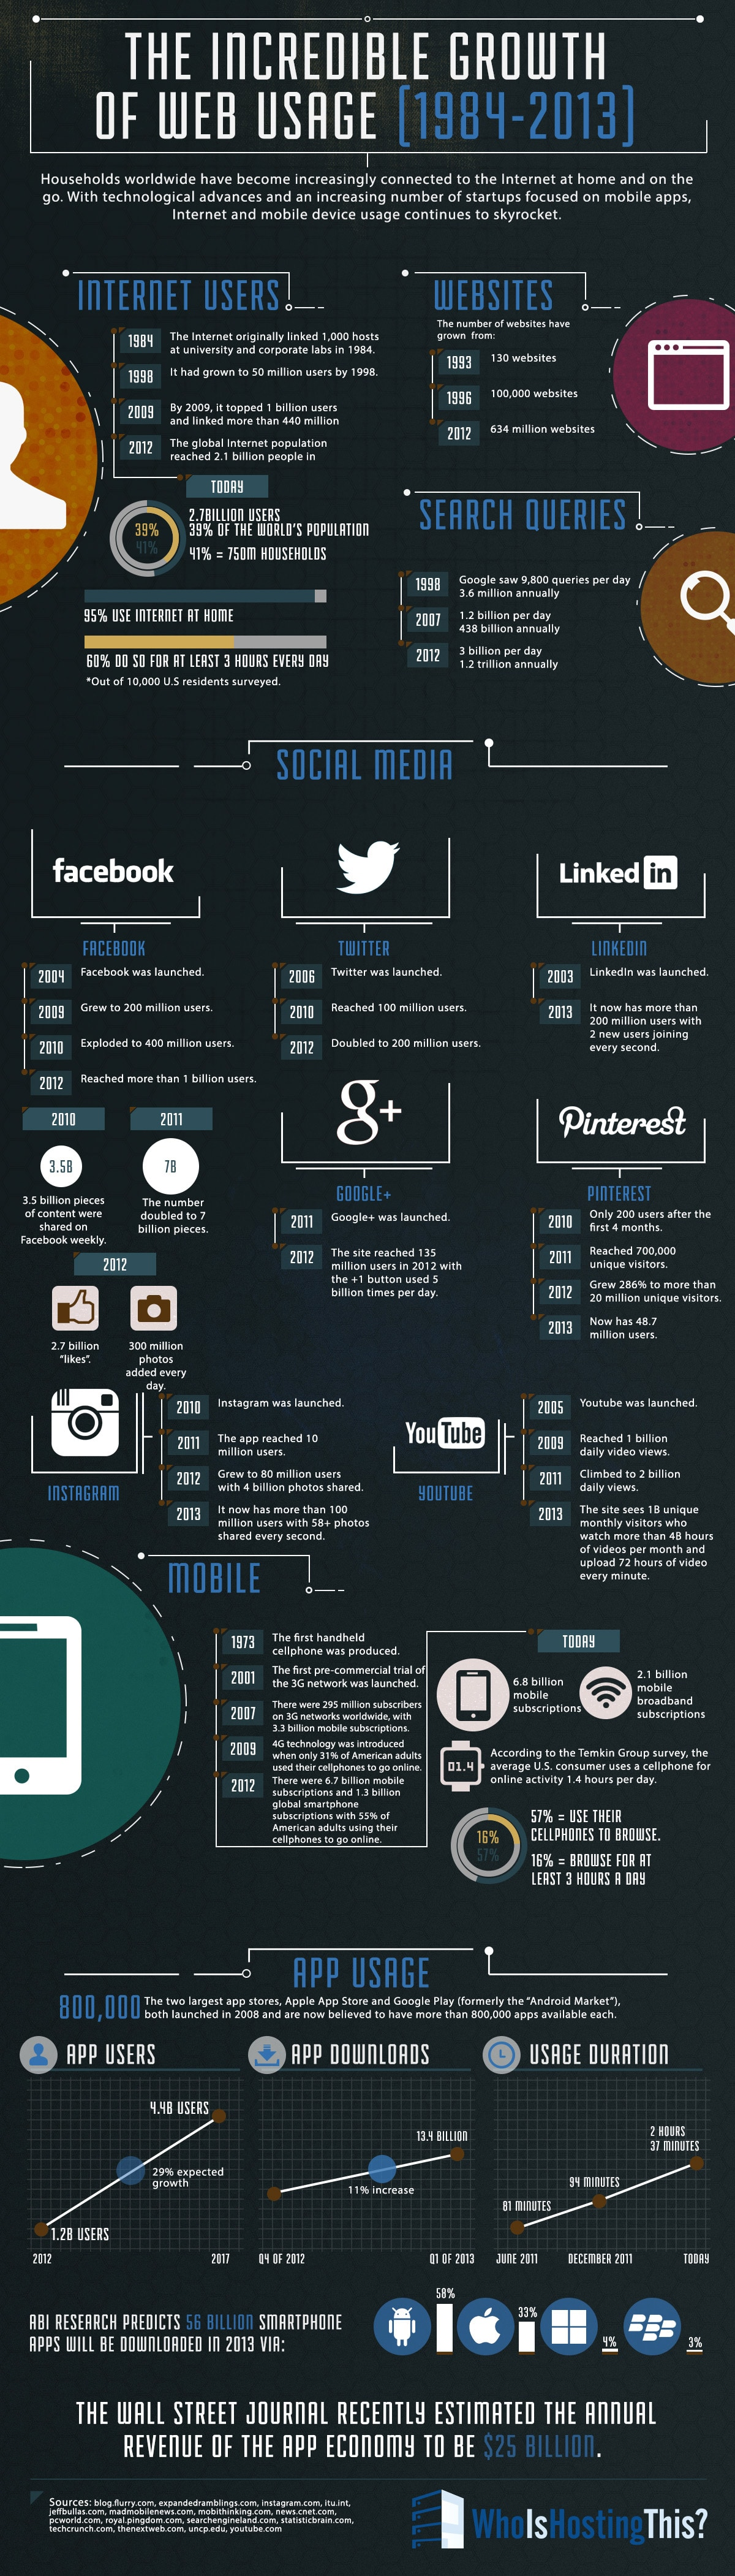 internet-growth-1984-2013-infographic